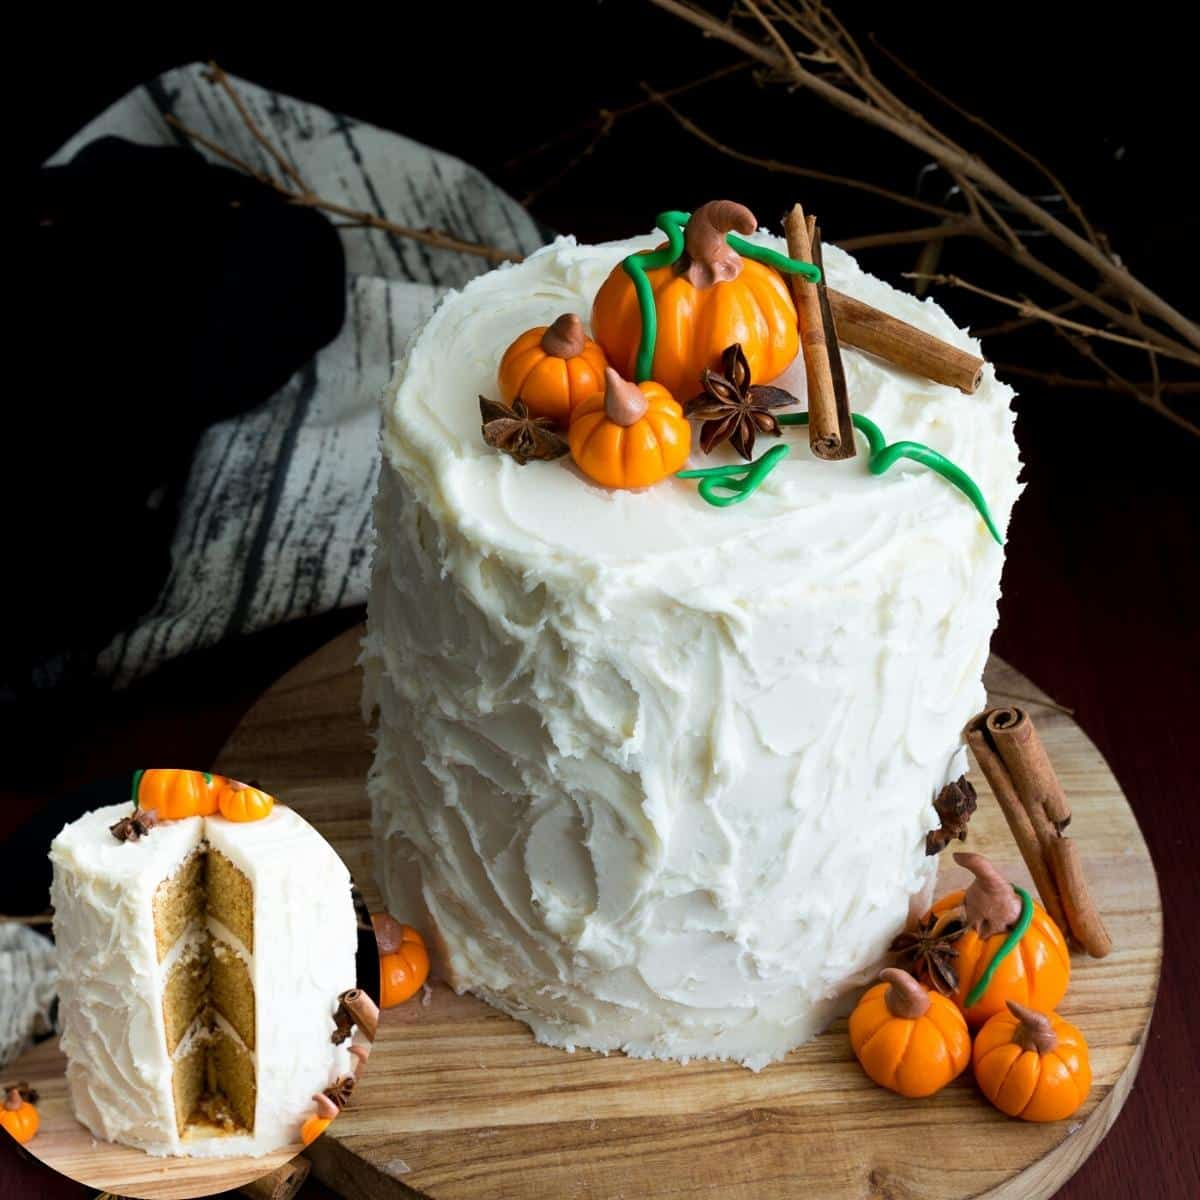 Frosted white cake with fondant pumpkins on top